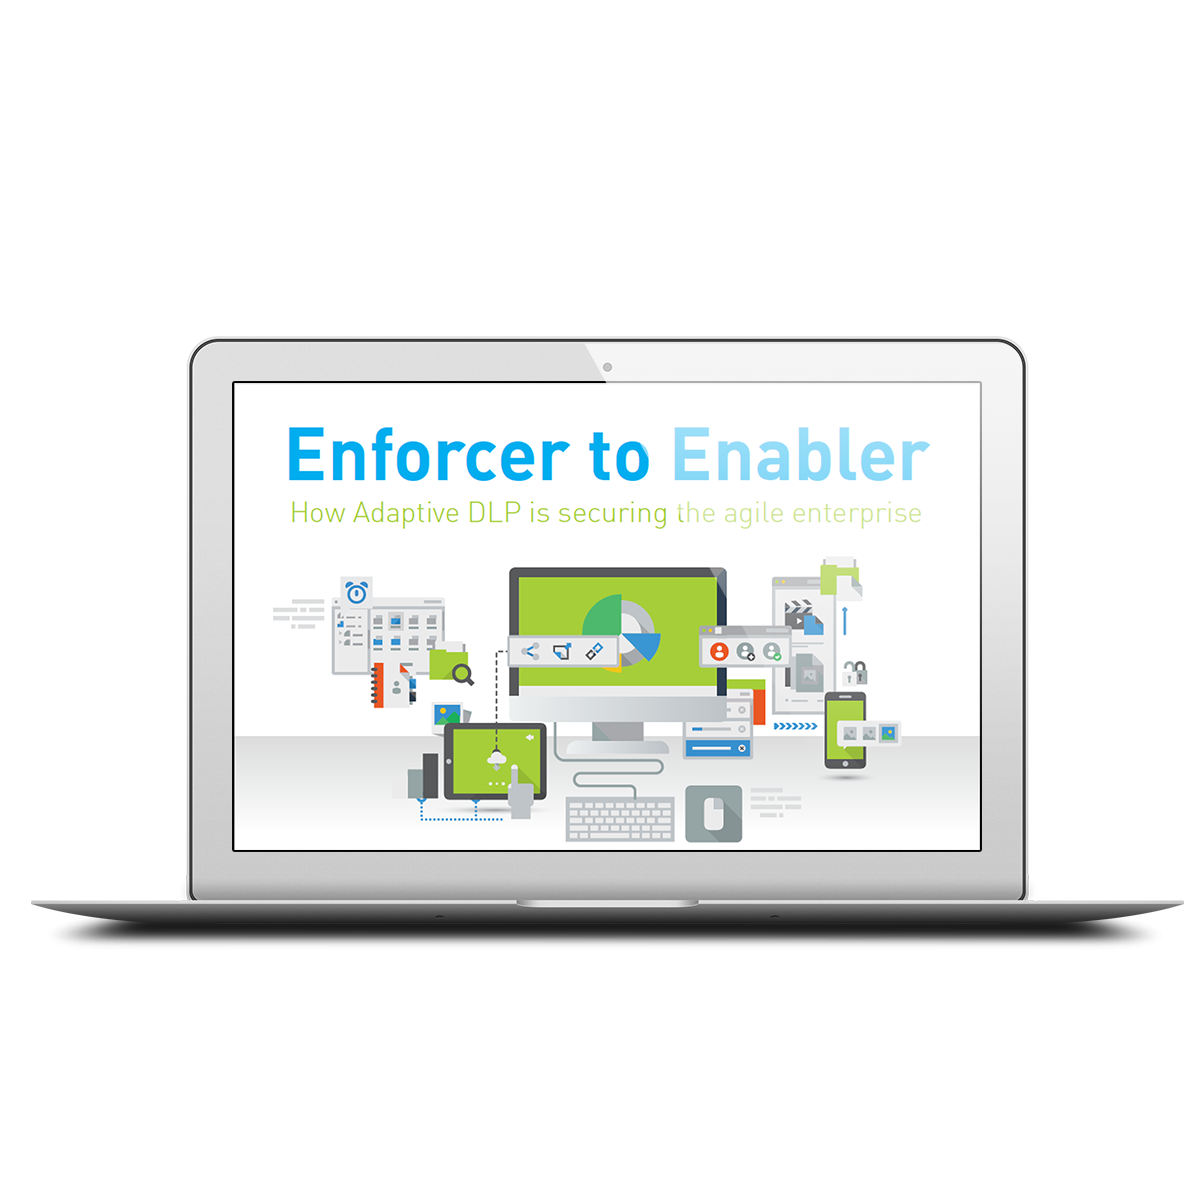 Enforcer to enabler infographic